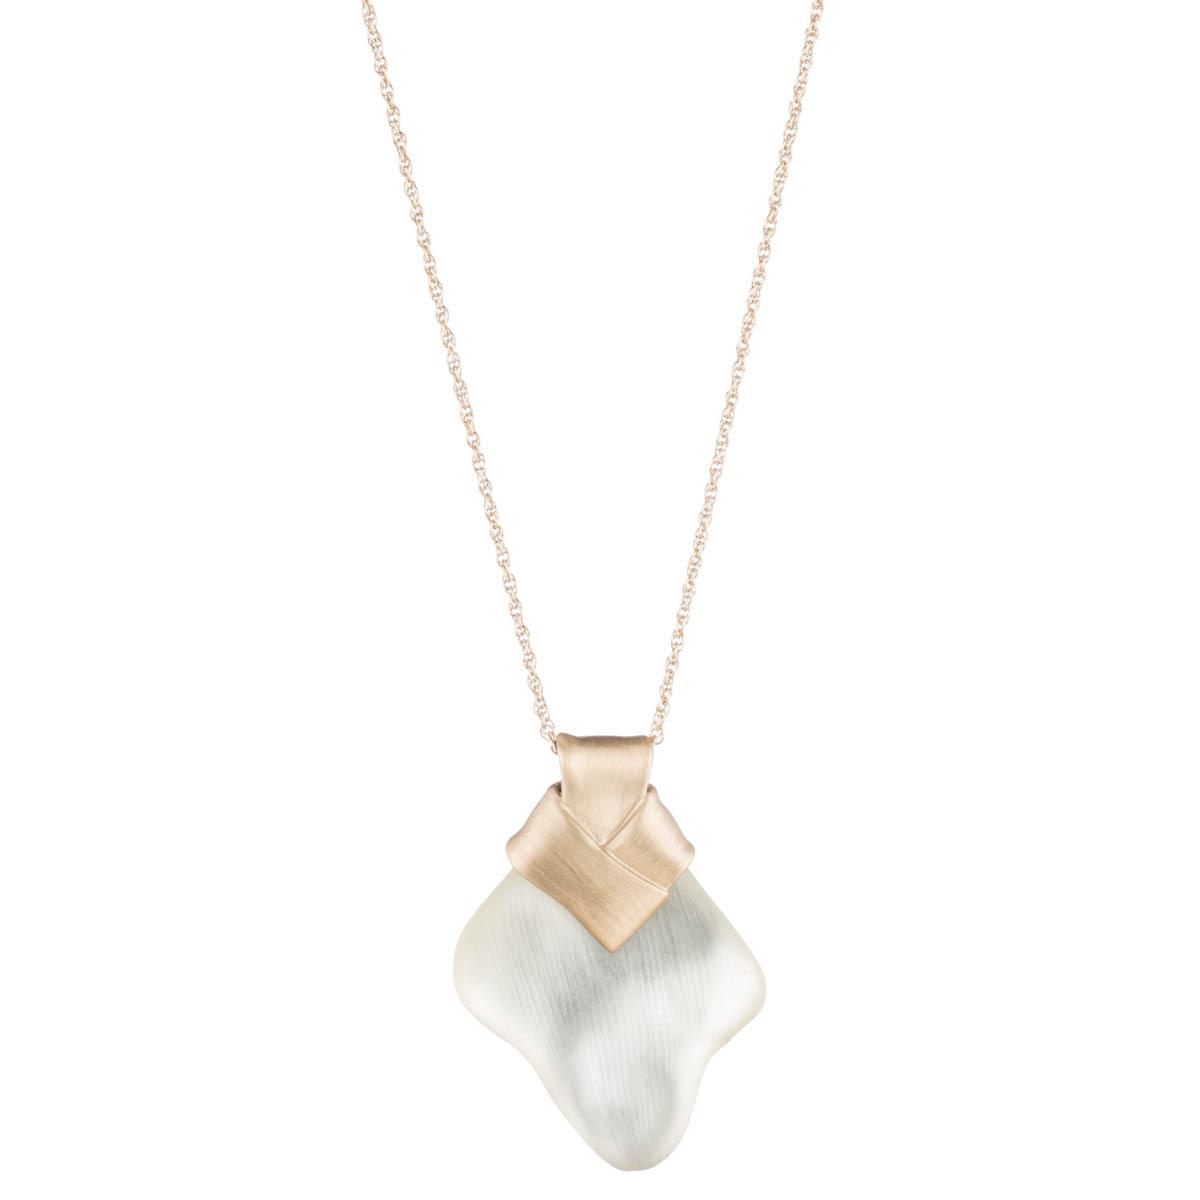 Alexis Bittar Folded Knot Reversible Necklace xIFDL